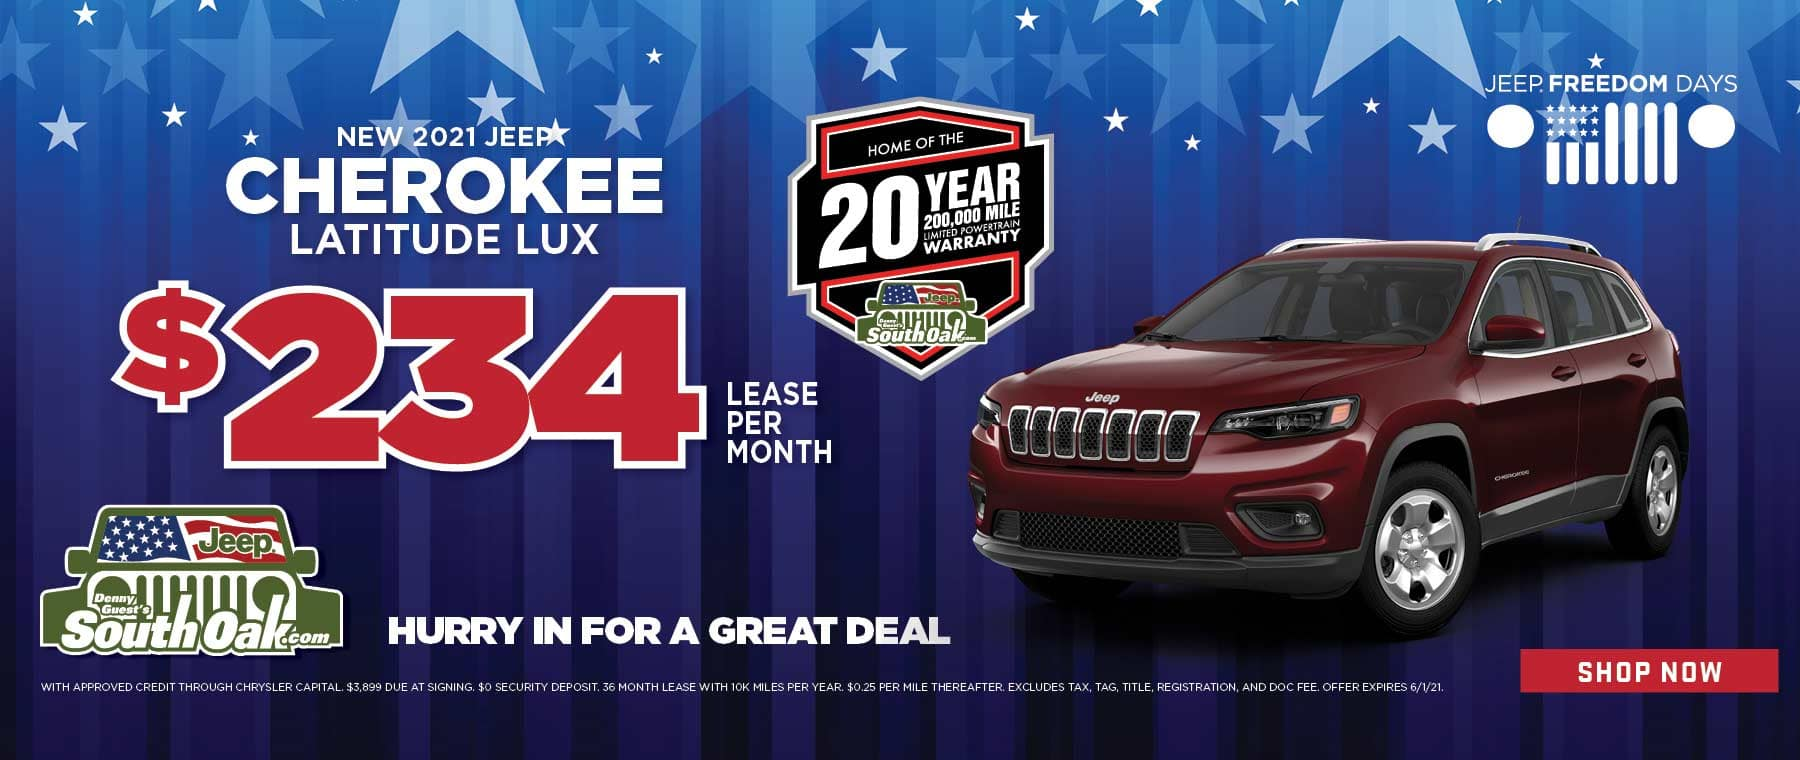 2021 Jeep Cherokee Lease Deal